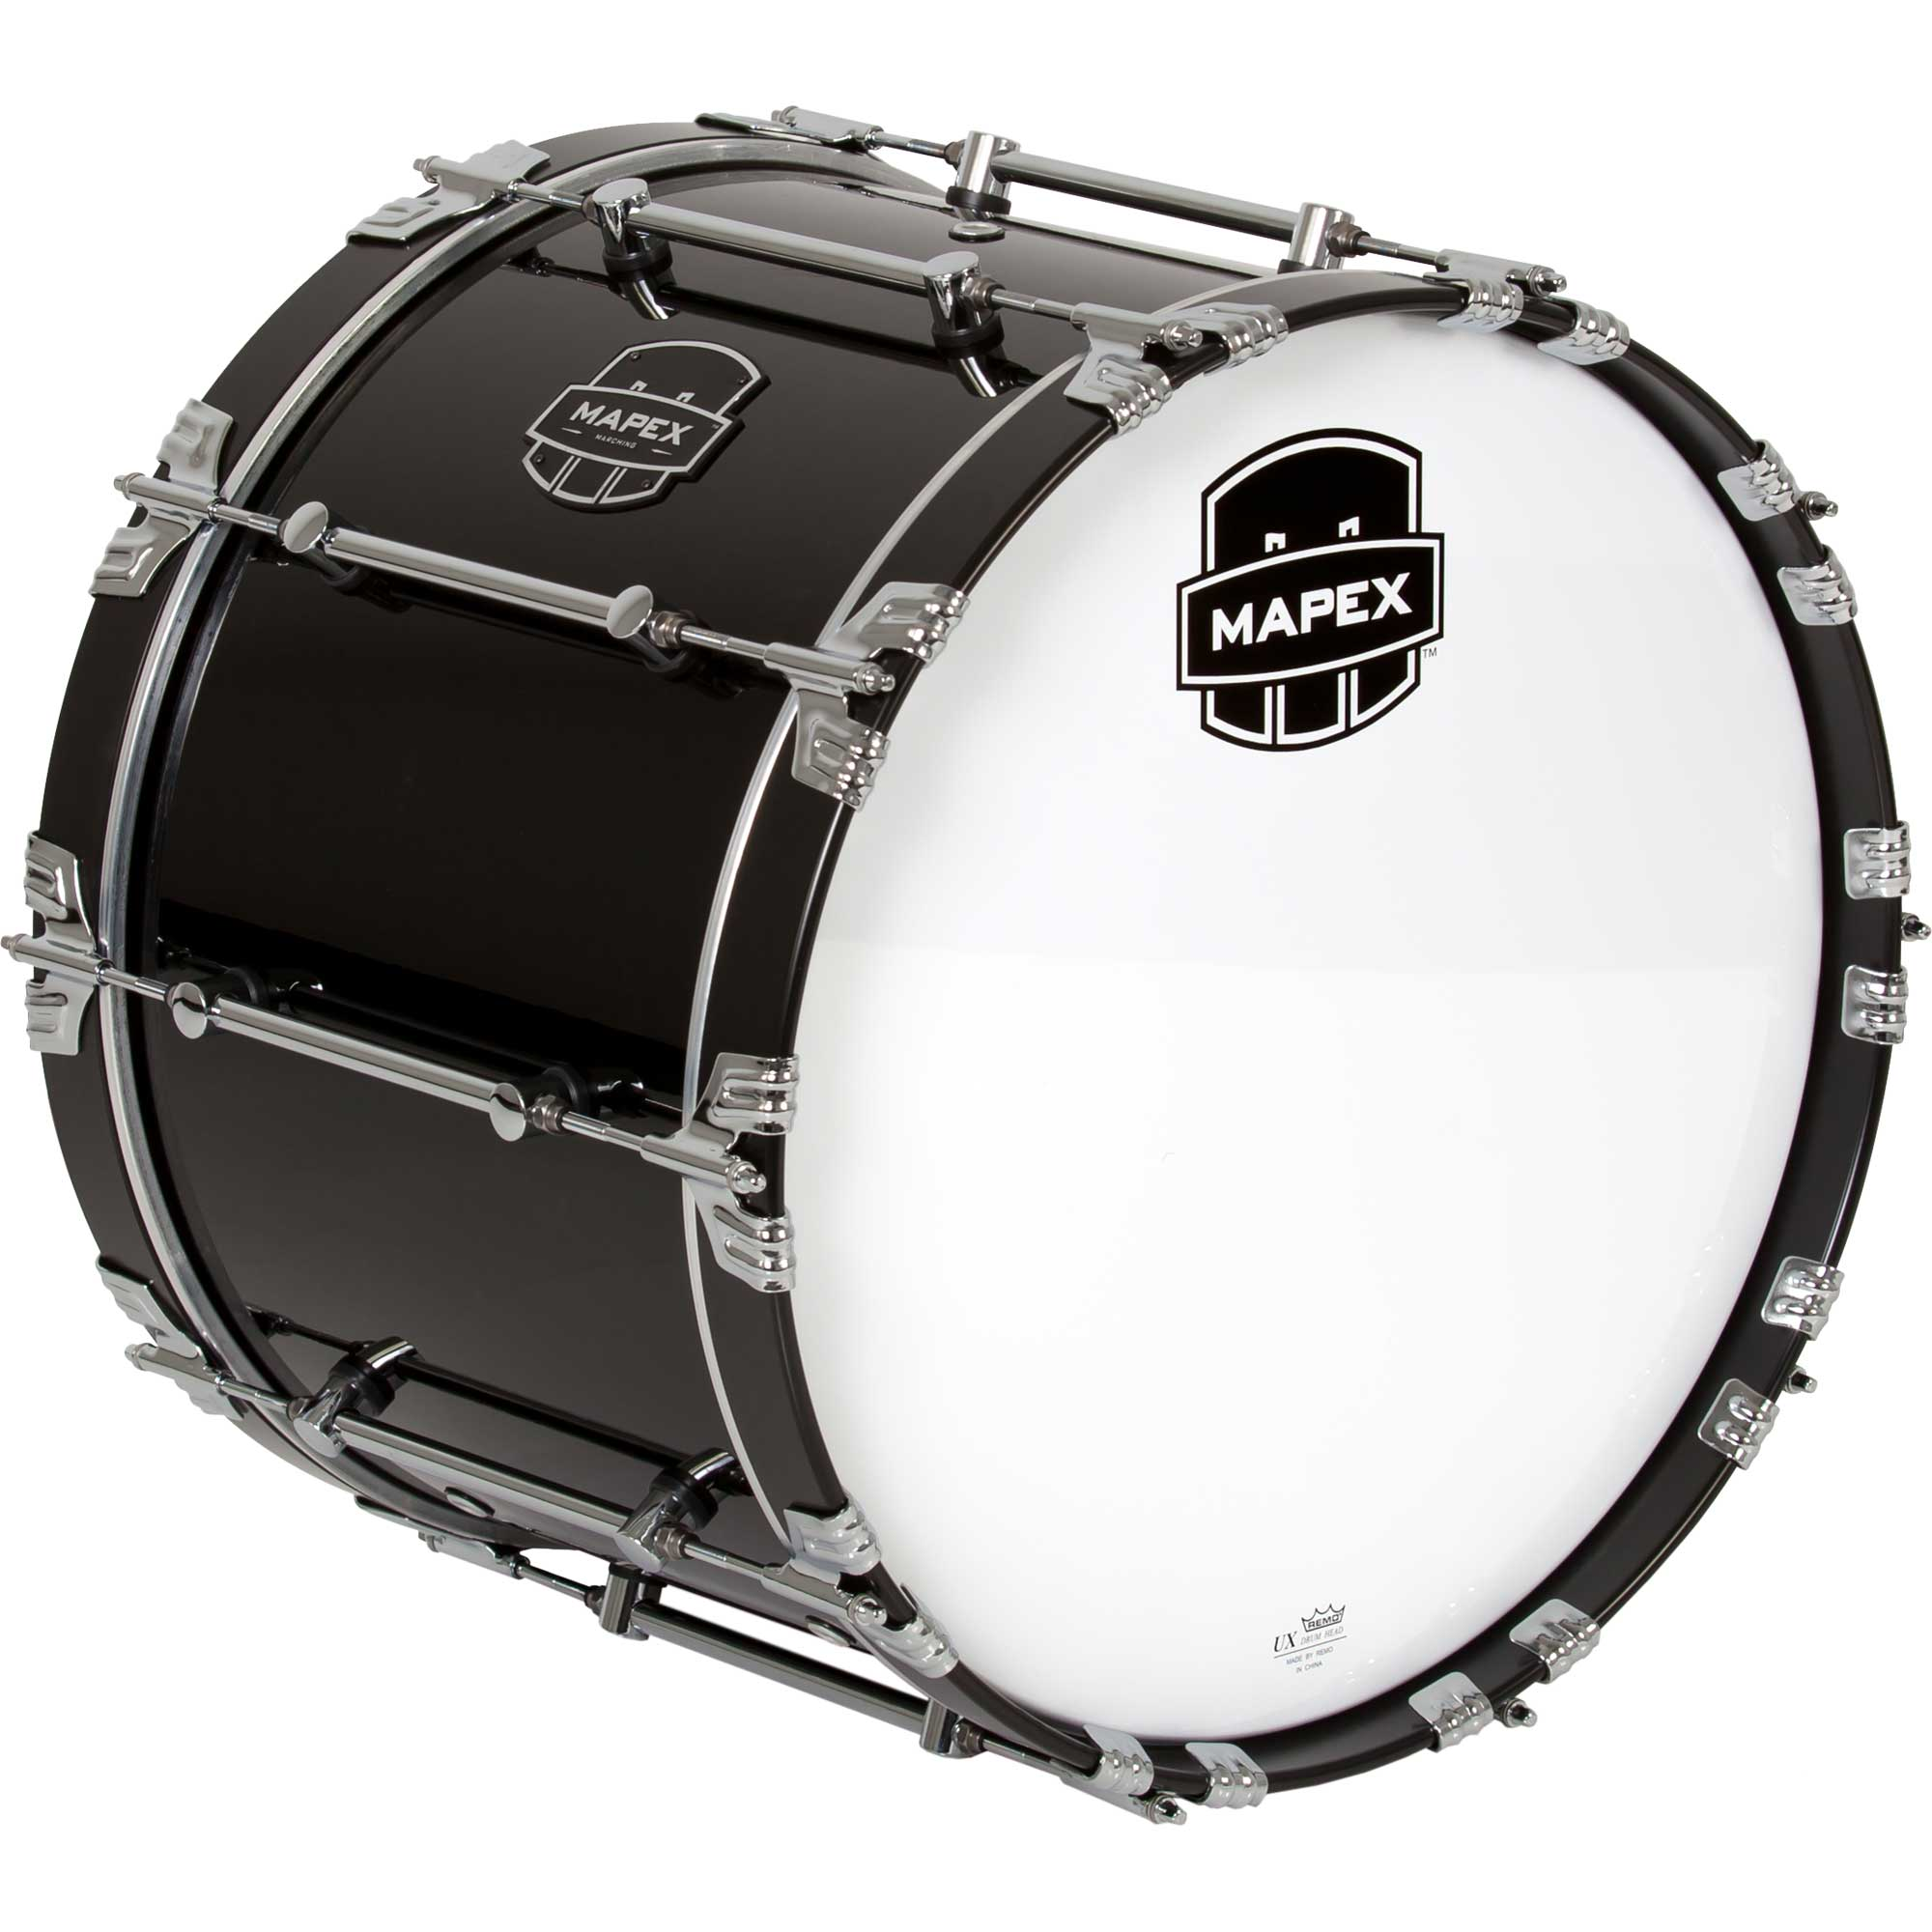 "Mapex 22"" Quantum Marching Bass Drum in Gloss Black"